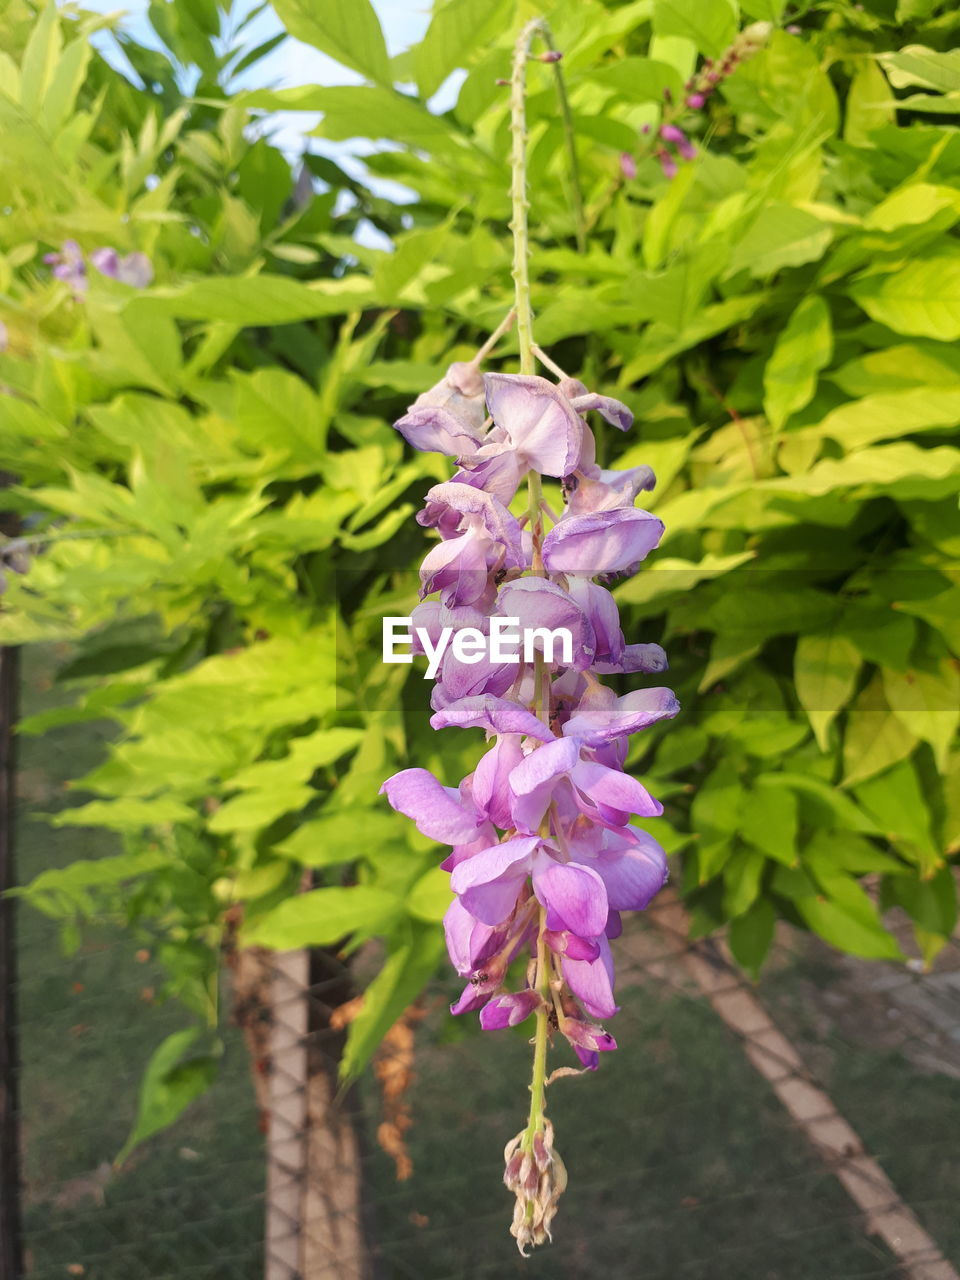 plant, flowering plant, flower, growth, beauty in nature, petal, freshness, vulnerability, fragility, pink color, close-up, purple, nature, day, plant part, leaf, no people, focus on foreground, inflorescence, botany, flower head, outdoors, lilac